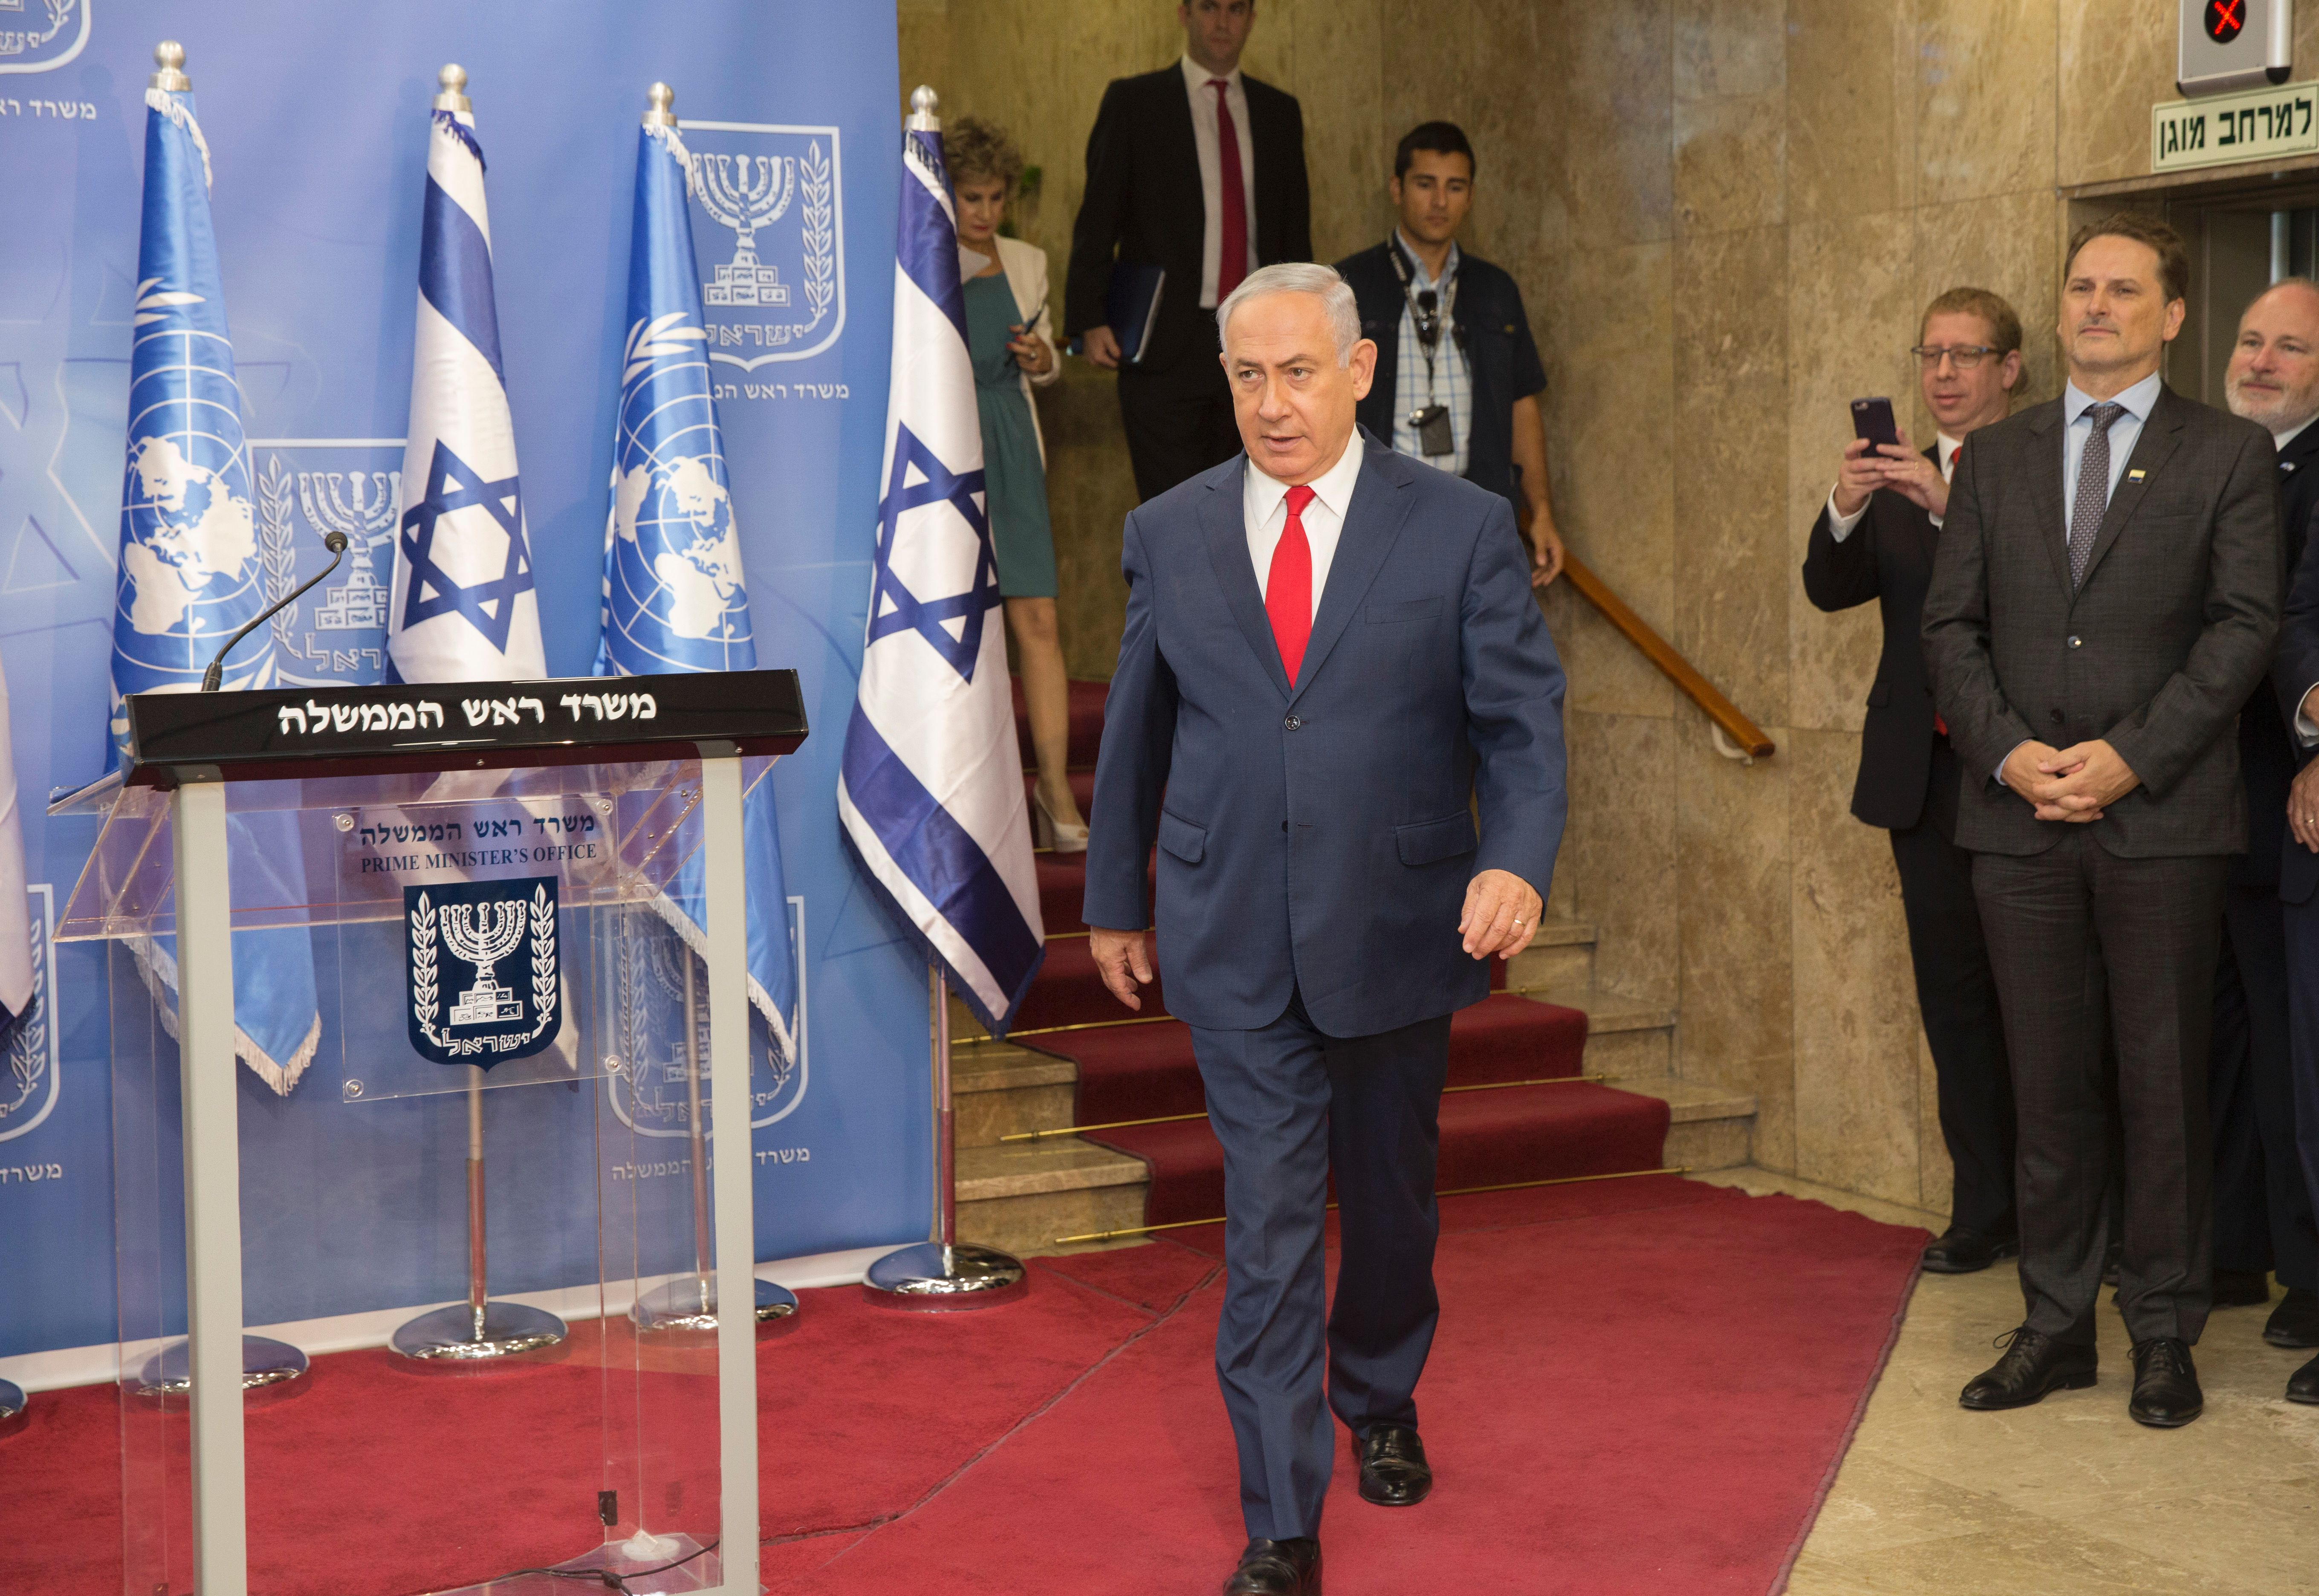 Iran is building missile sites in Syria, says Israel's Netanyahu